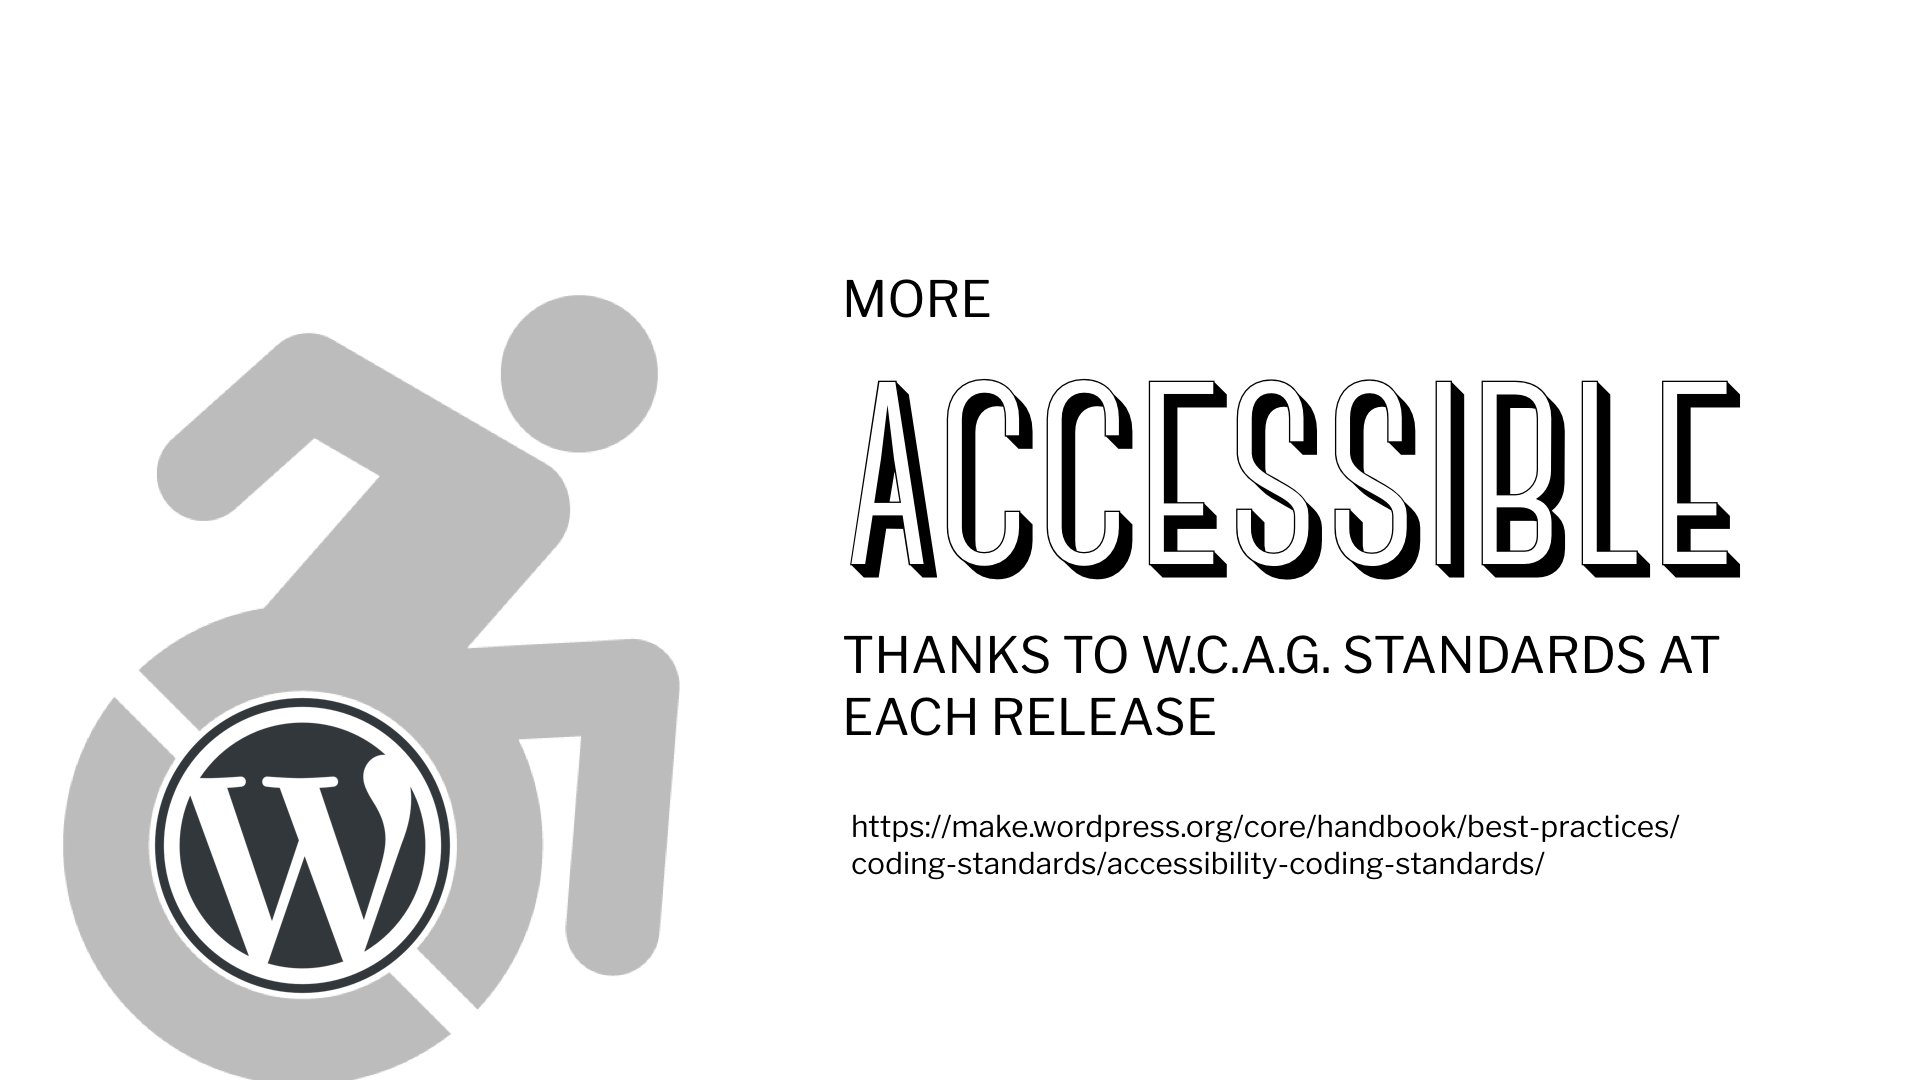 Using WCAG standards for each release means WordPress is more accessible than ever. #wcus https://t.co/HU486fvAKH